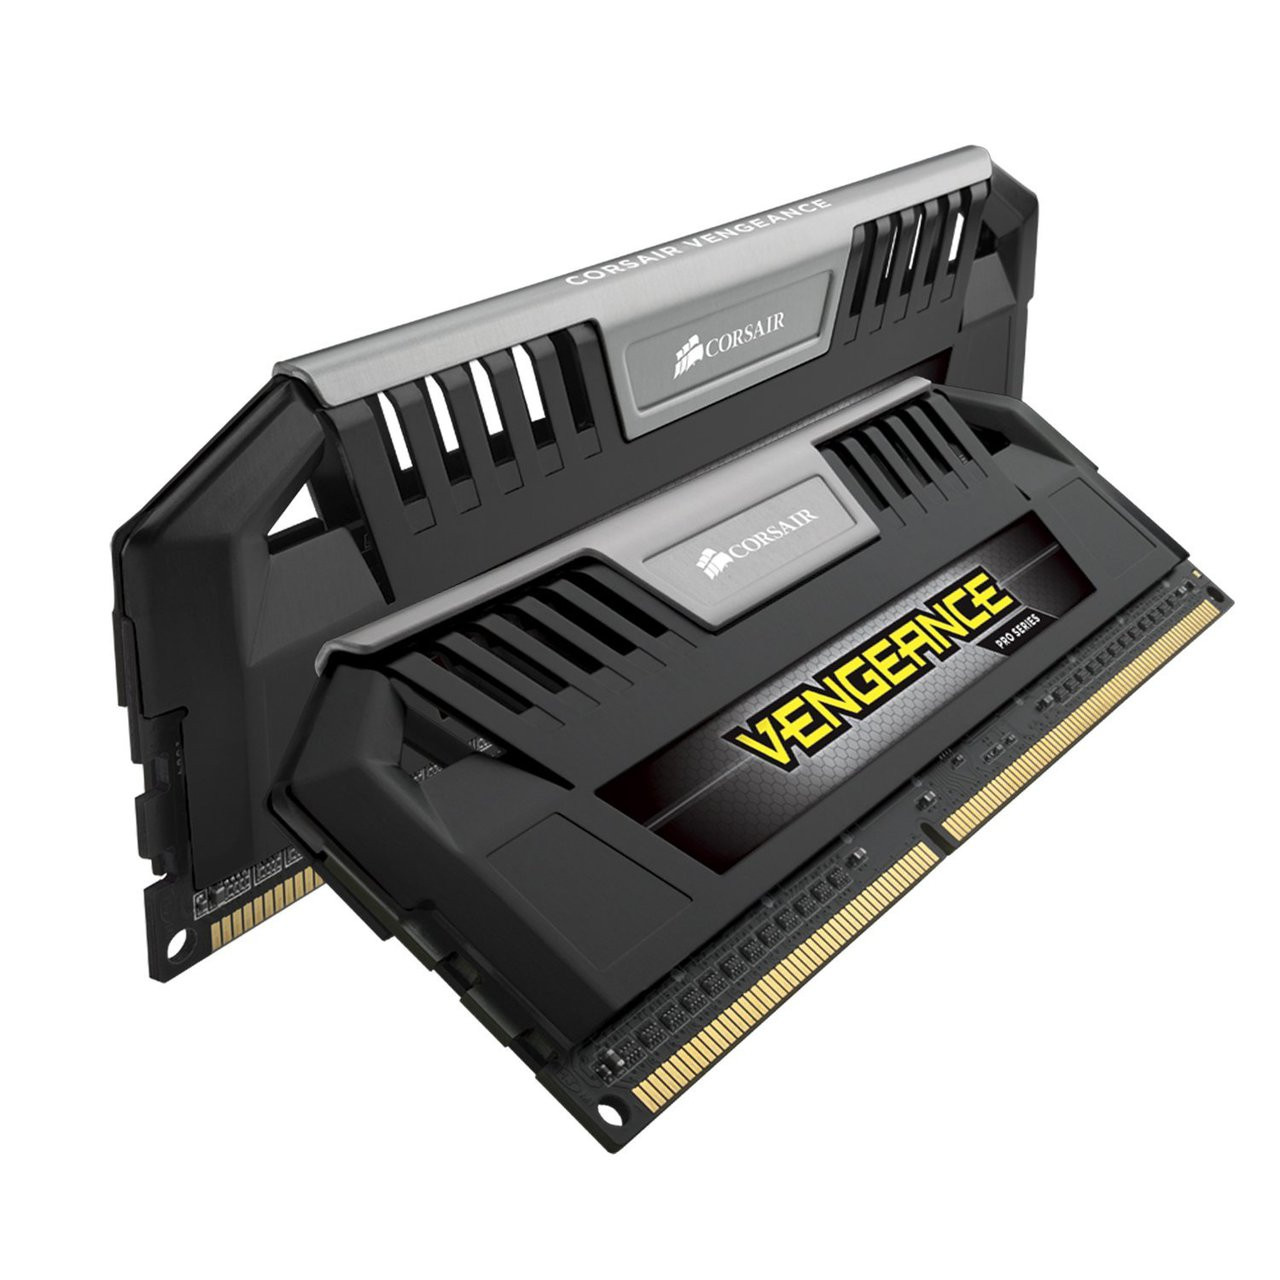 Product image for Corsair Vengeance Pro 16GB (2x 8GB) DDR3 1600MHz Memory | CX Computer Superstore